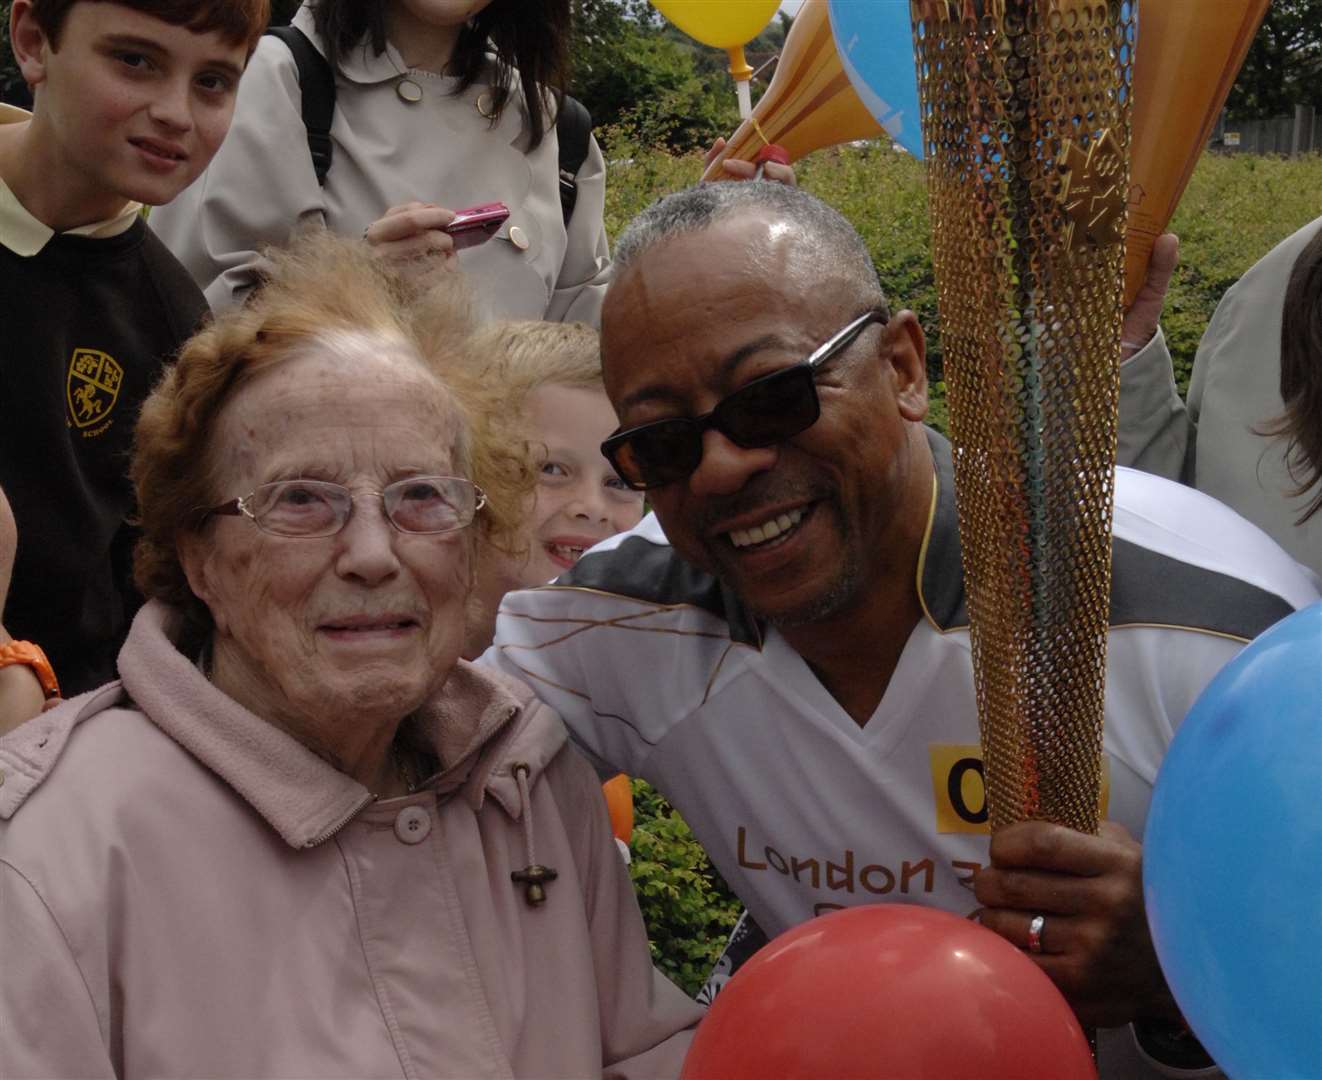 Jean Holton, who turned 90 just weeks later, meets torchbearer George Hamilton. Jean saw the Olympic flame in London in 1948